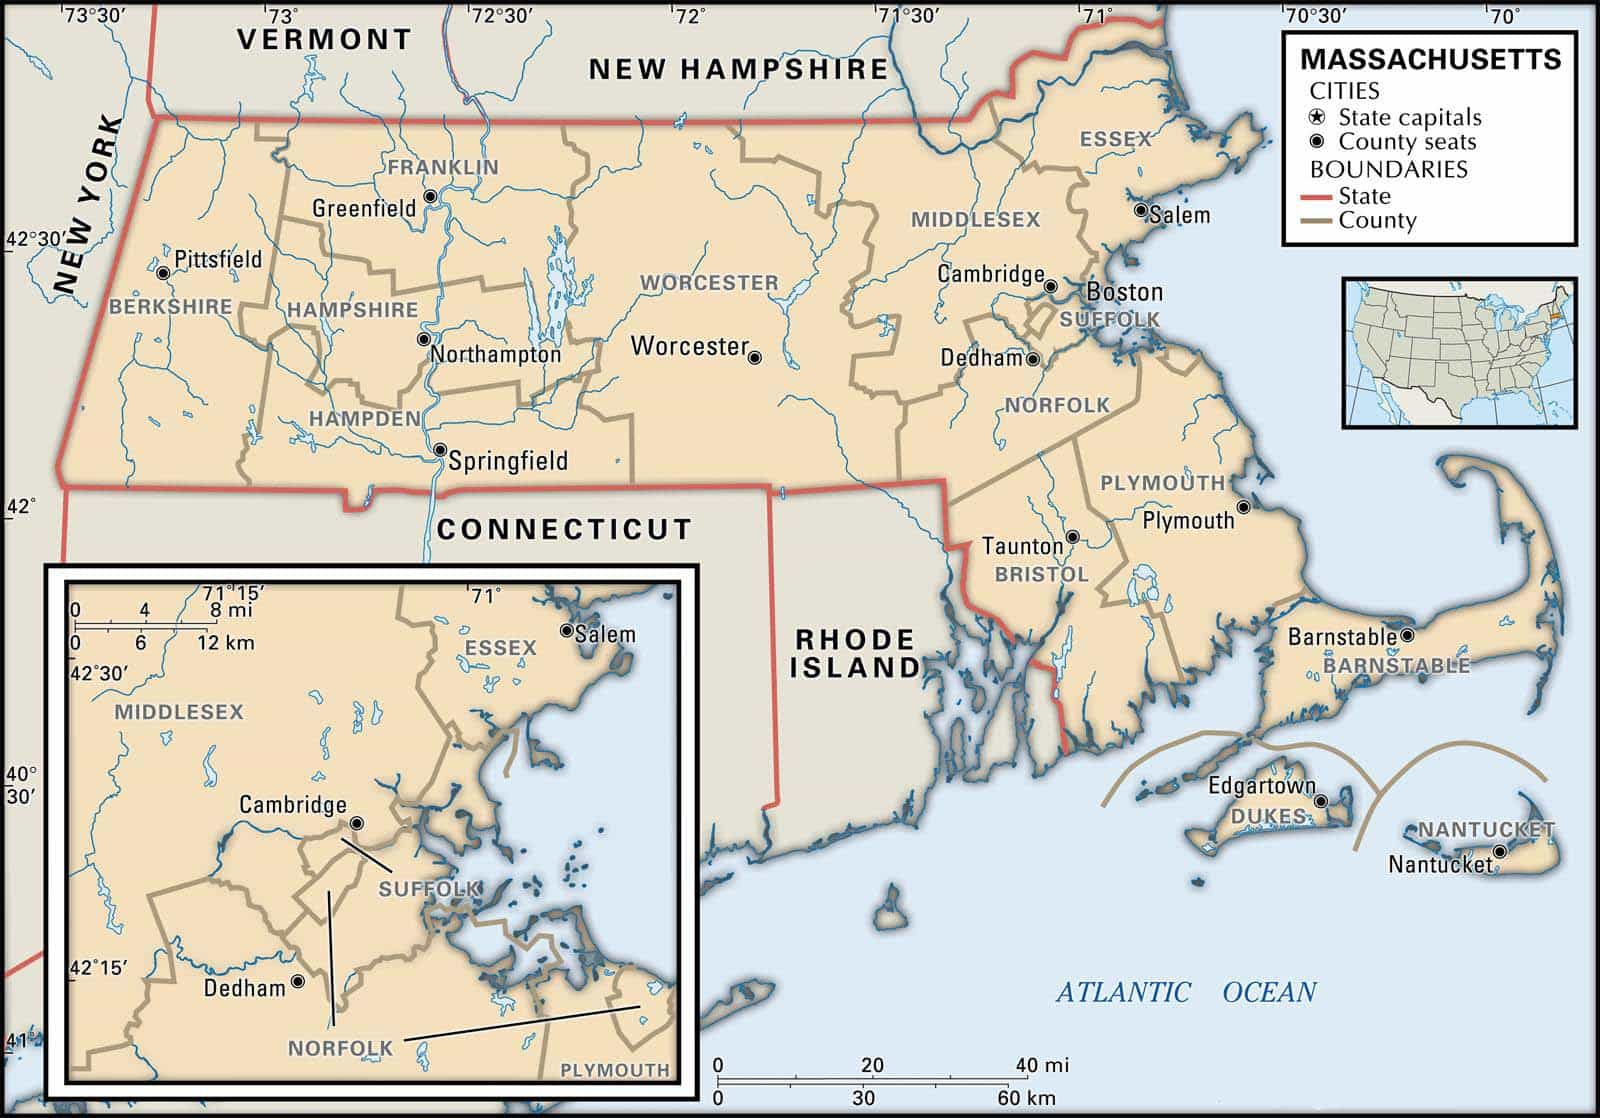 historical facts of massachusetts counties